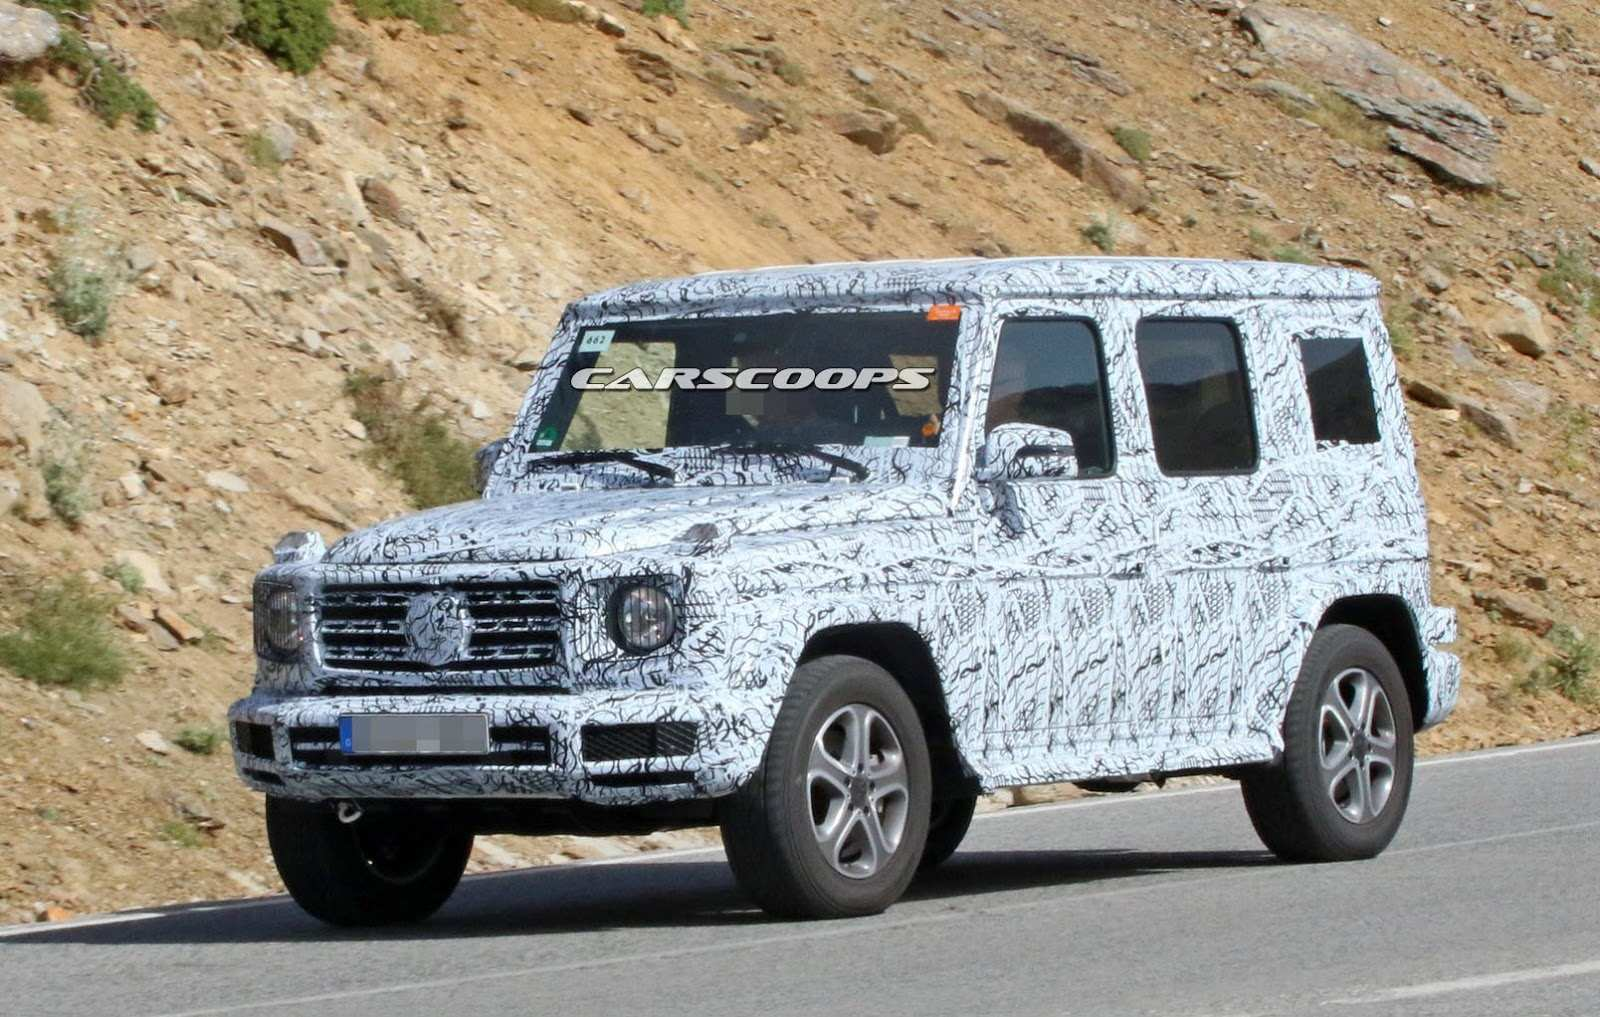 35 All New 2020 Mercedes G Wagon Exterior Research New by 2020 Mercedes G Wagon Exterior